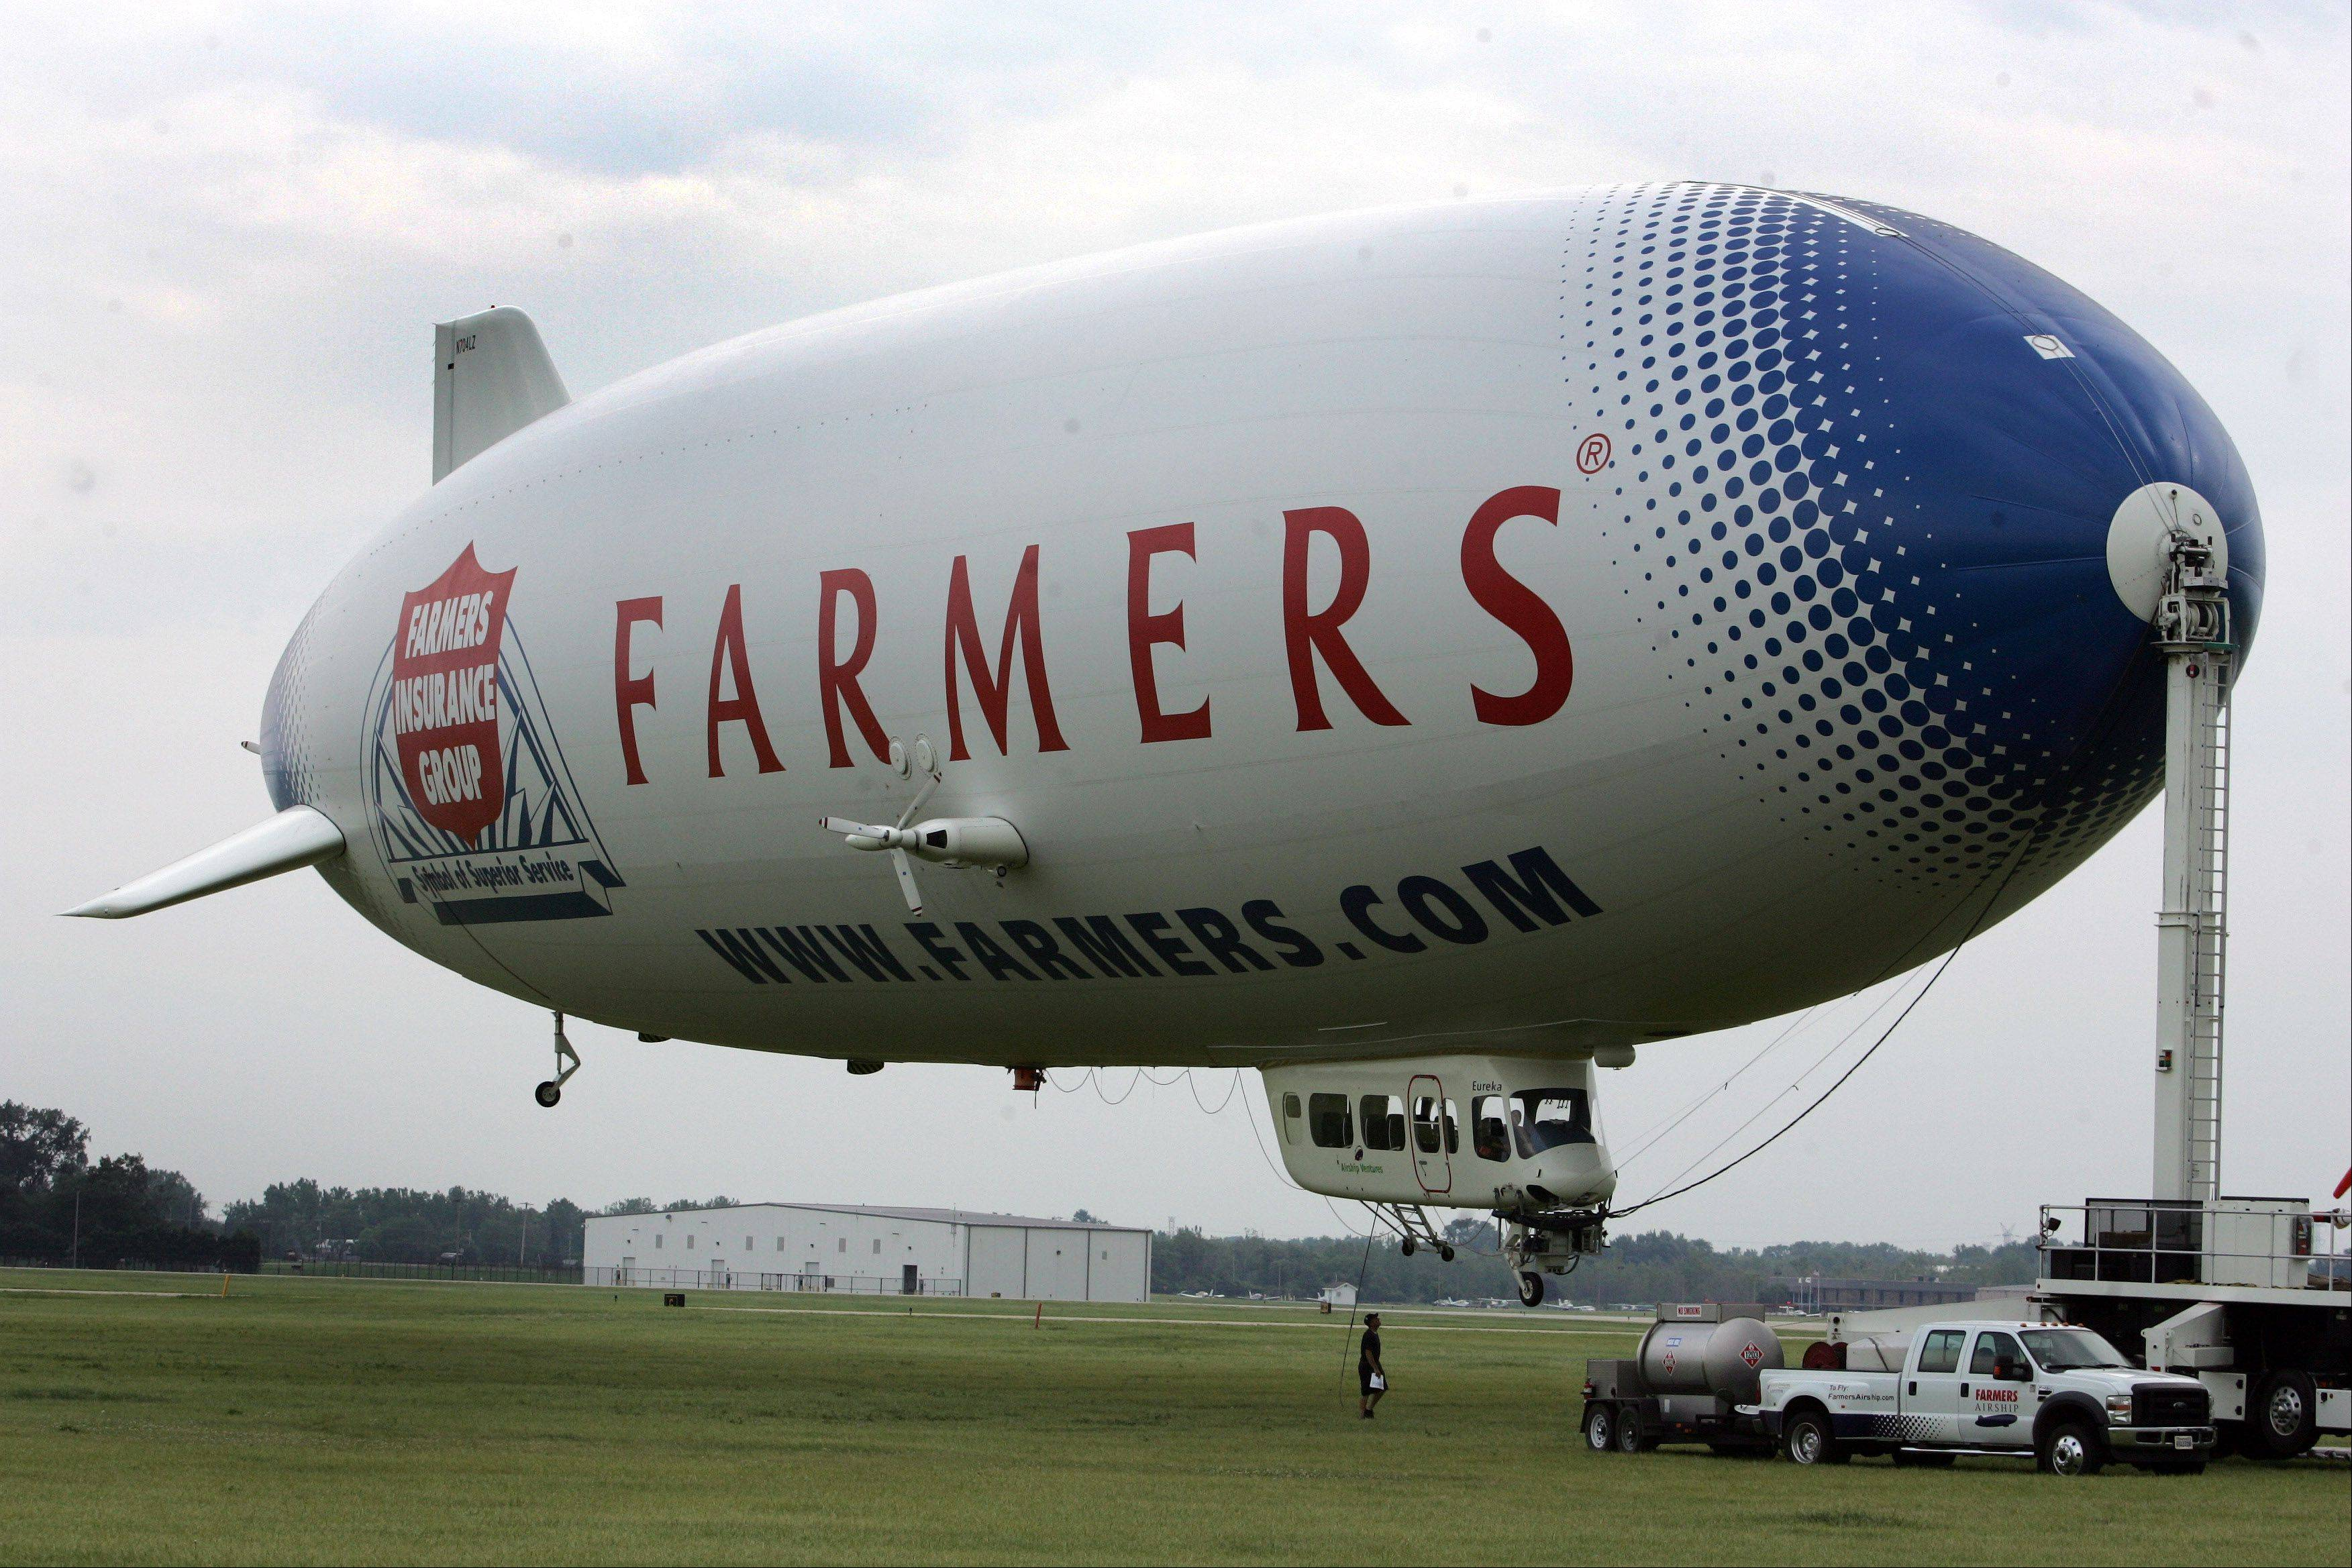 The Farmers Airship, one of only two Zeppelins currently flying globally, makes a stop at the DuPage County Airport in West Chicago. It is the largest passenger airship in the world, 15 feet longer than a Boeing 747 and 50 feet longer than the largest blimp.